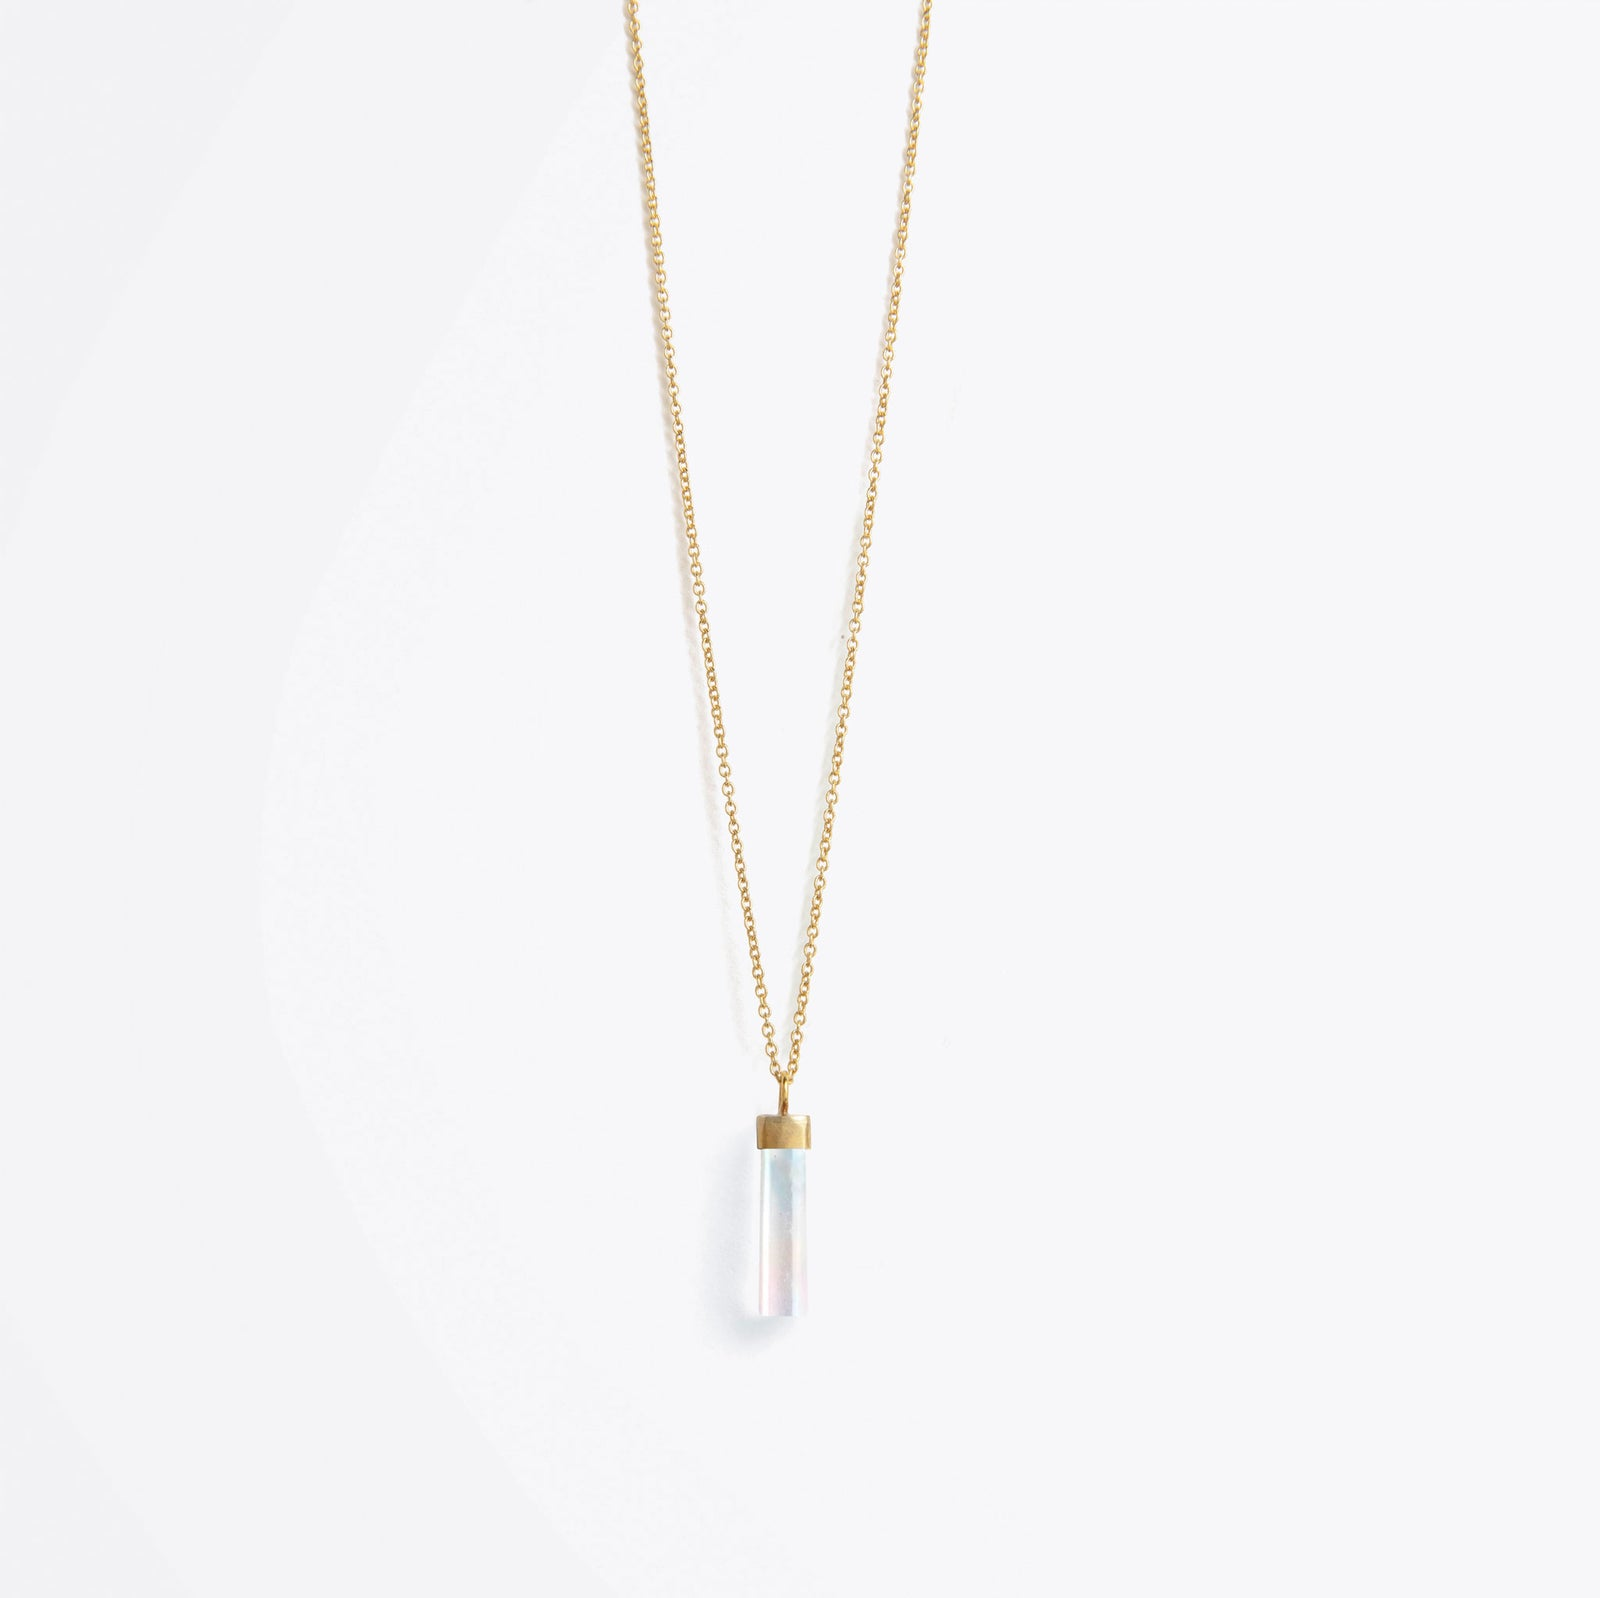 talisman fine gold chain necklace | rainbow moonstone